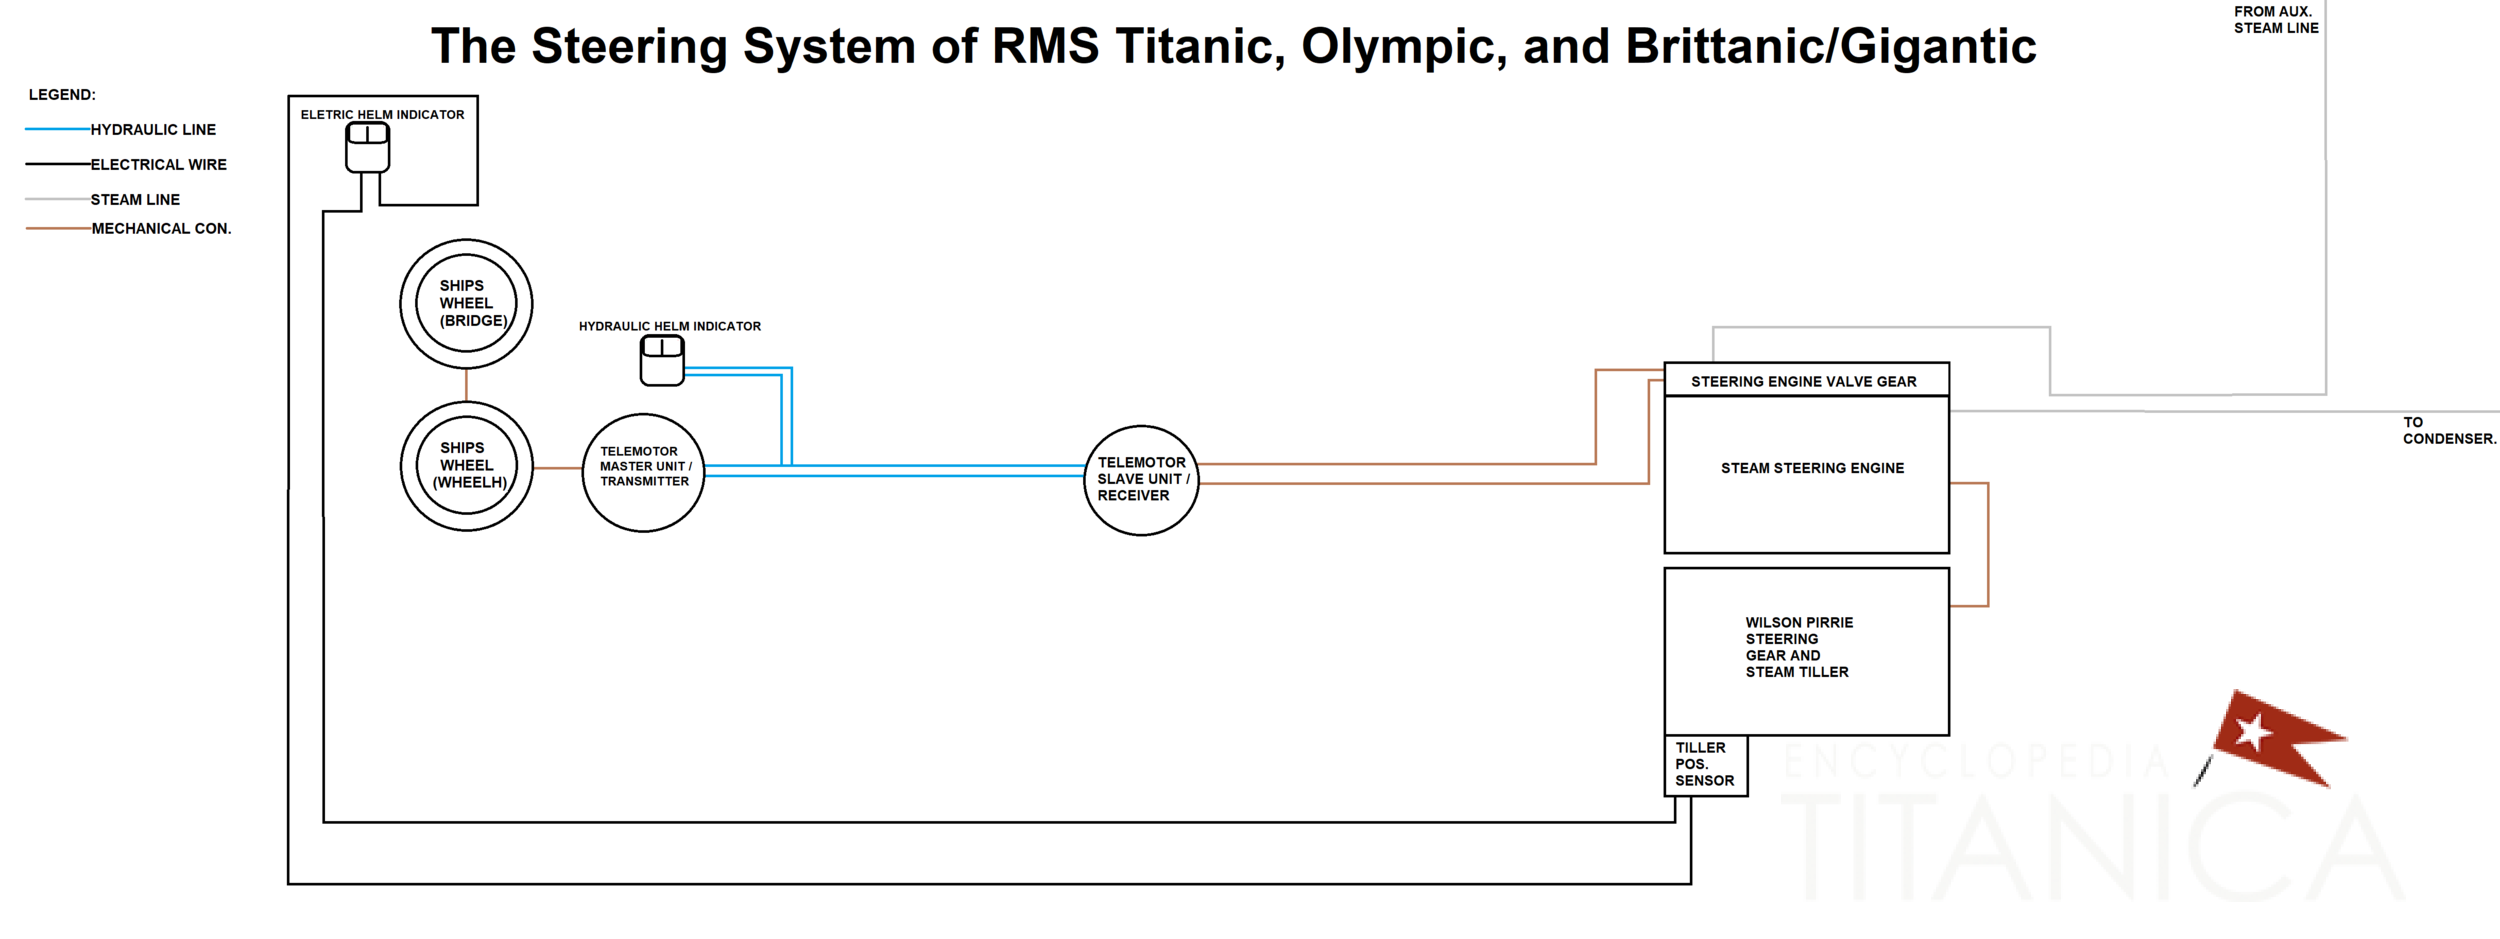 RMS_TITANIC_STEERING_SYSTEM_SCHEMATIC.png